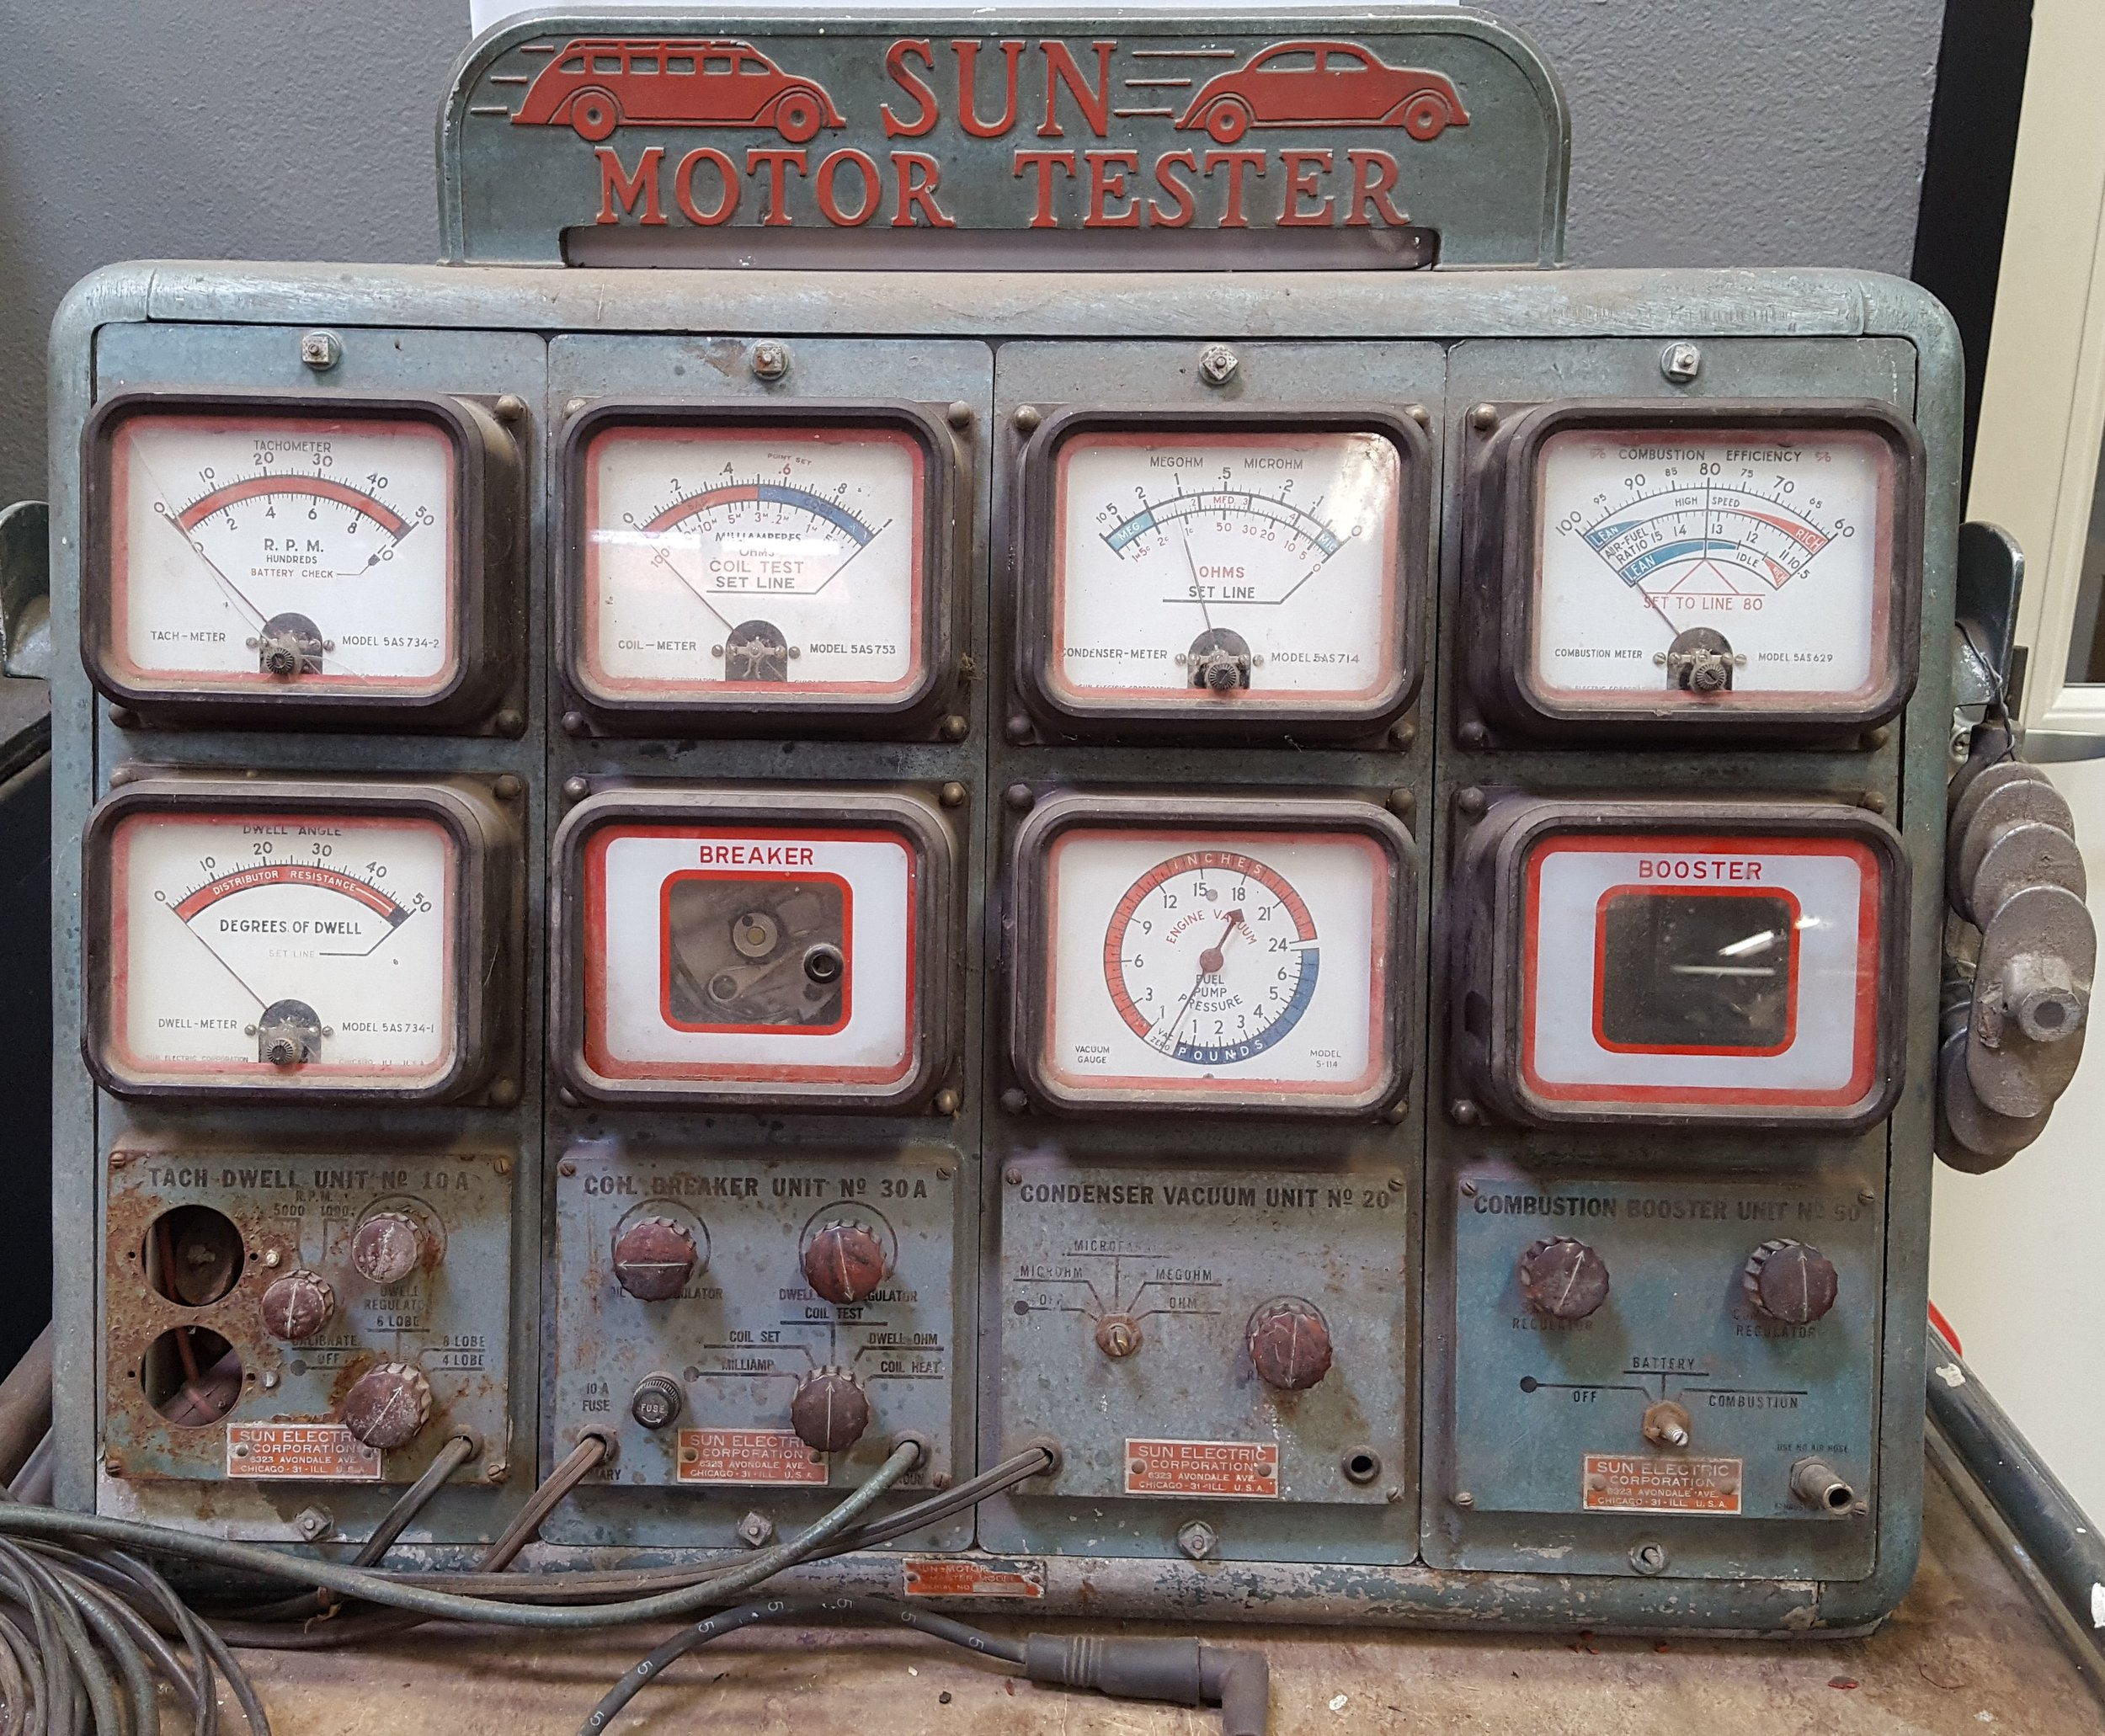 Do You Know What These Car Instruments Do?